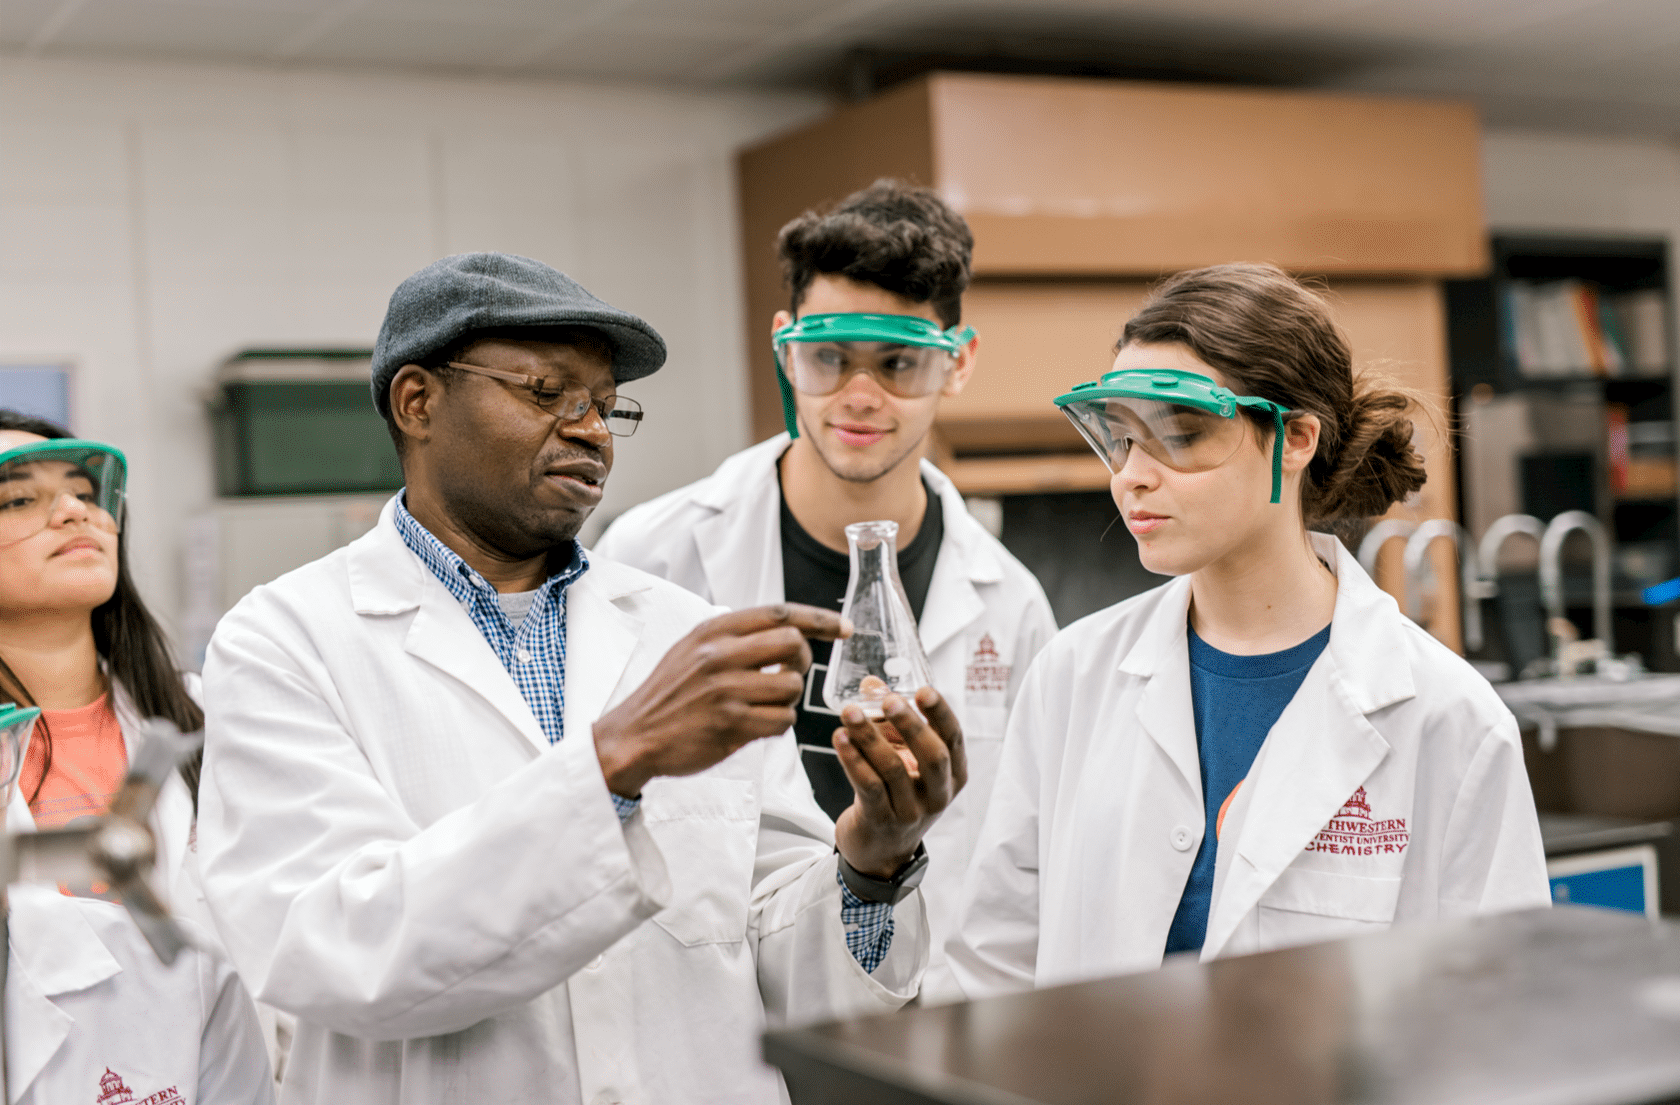 A professor holds up a flask as he points and explains something to his students. All of them are wearing lab coats while the students all wear goggles.